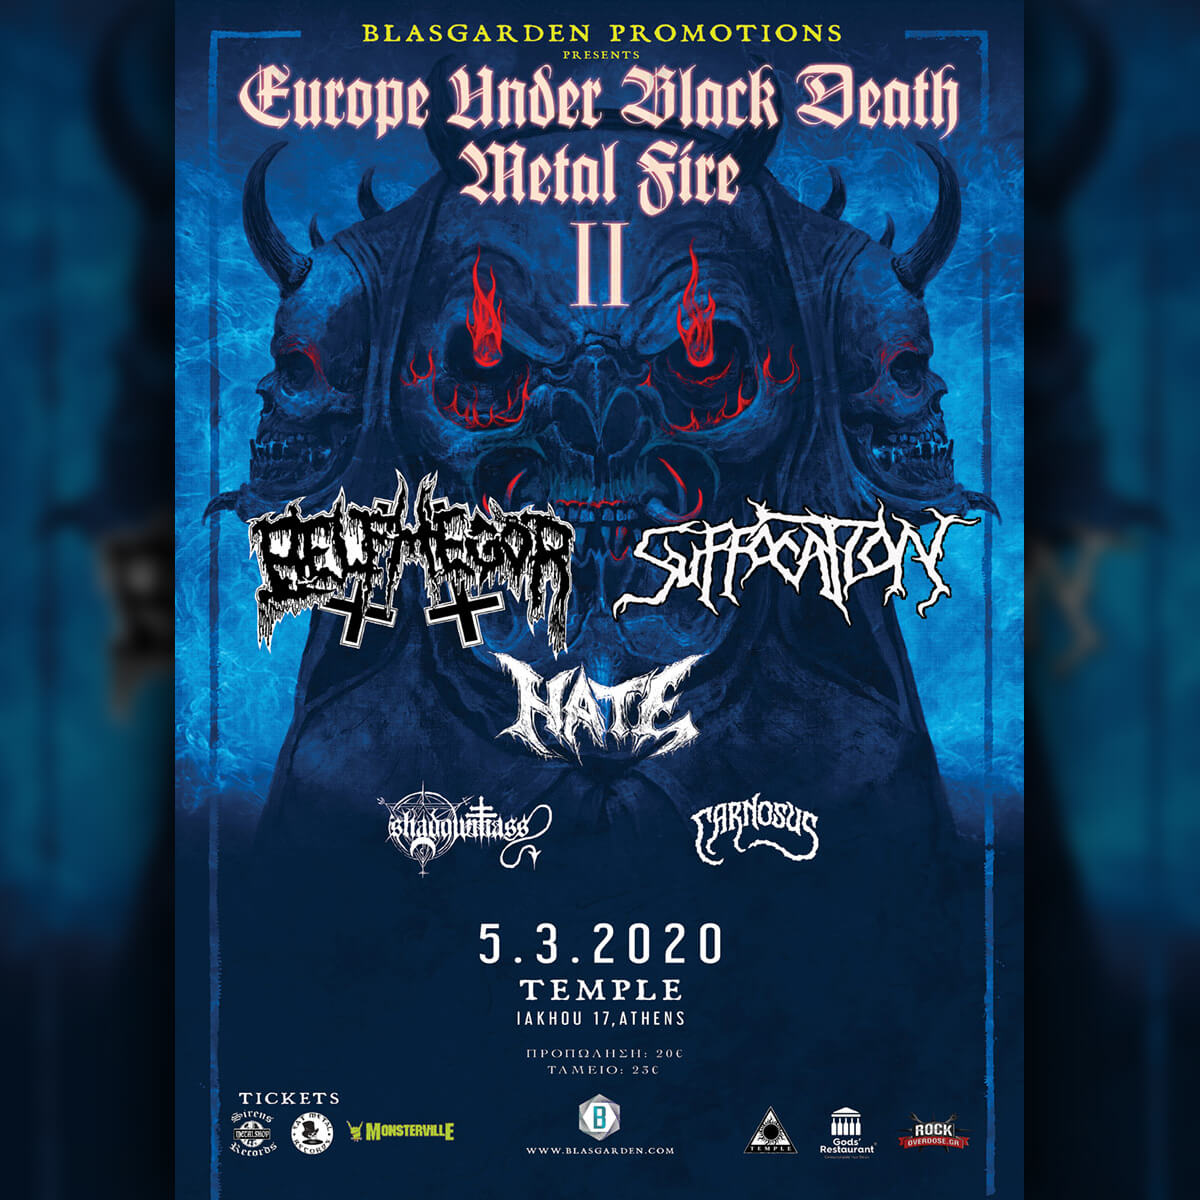 BELPHEGOR, SUFFOCATION, HATE w/ Shadowmass & Carnosus live @ Temple, Αθήνα, στις 5 Μαρτίου